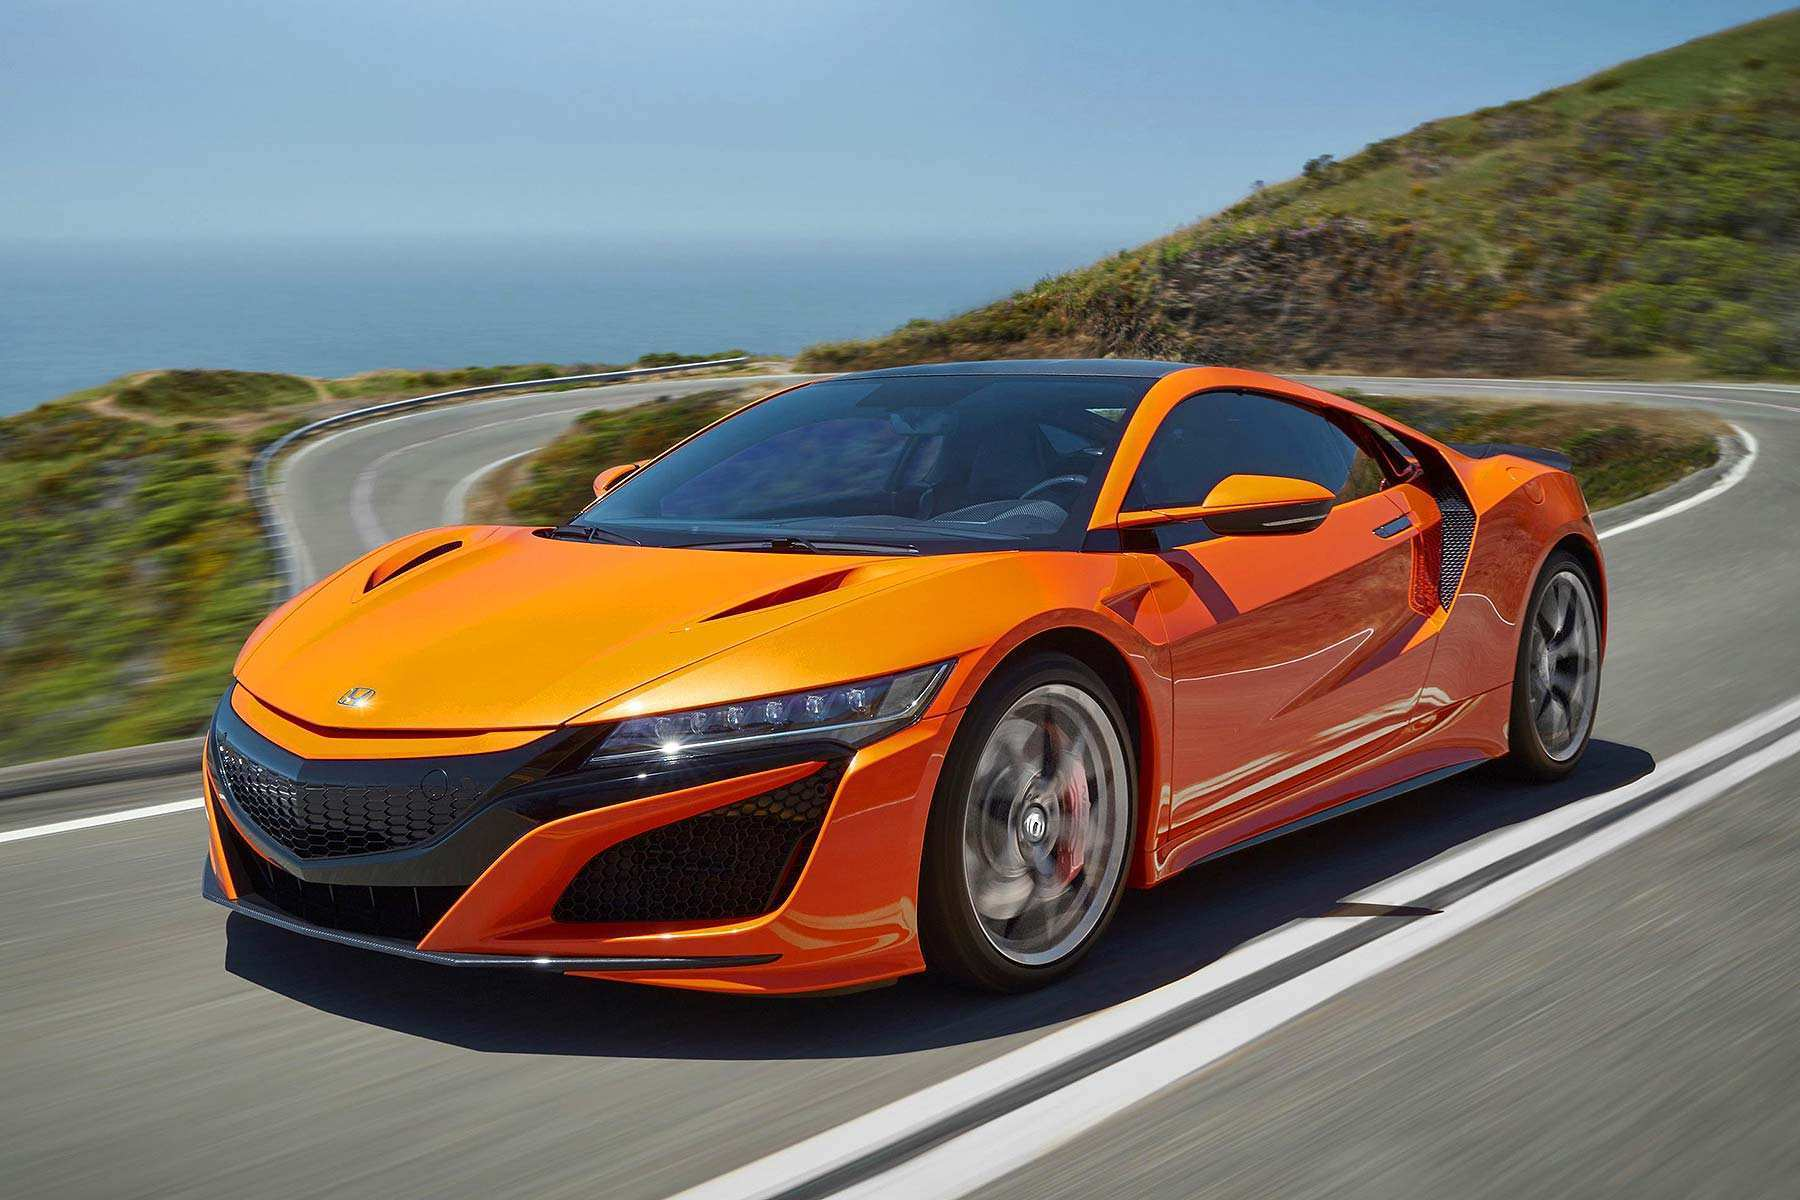 91 All New 2019 Honda Sports Car Review with 2019 Honda Sports Car